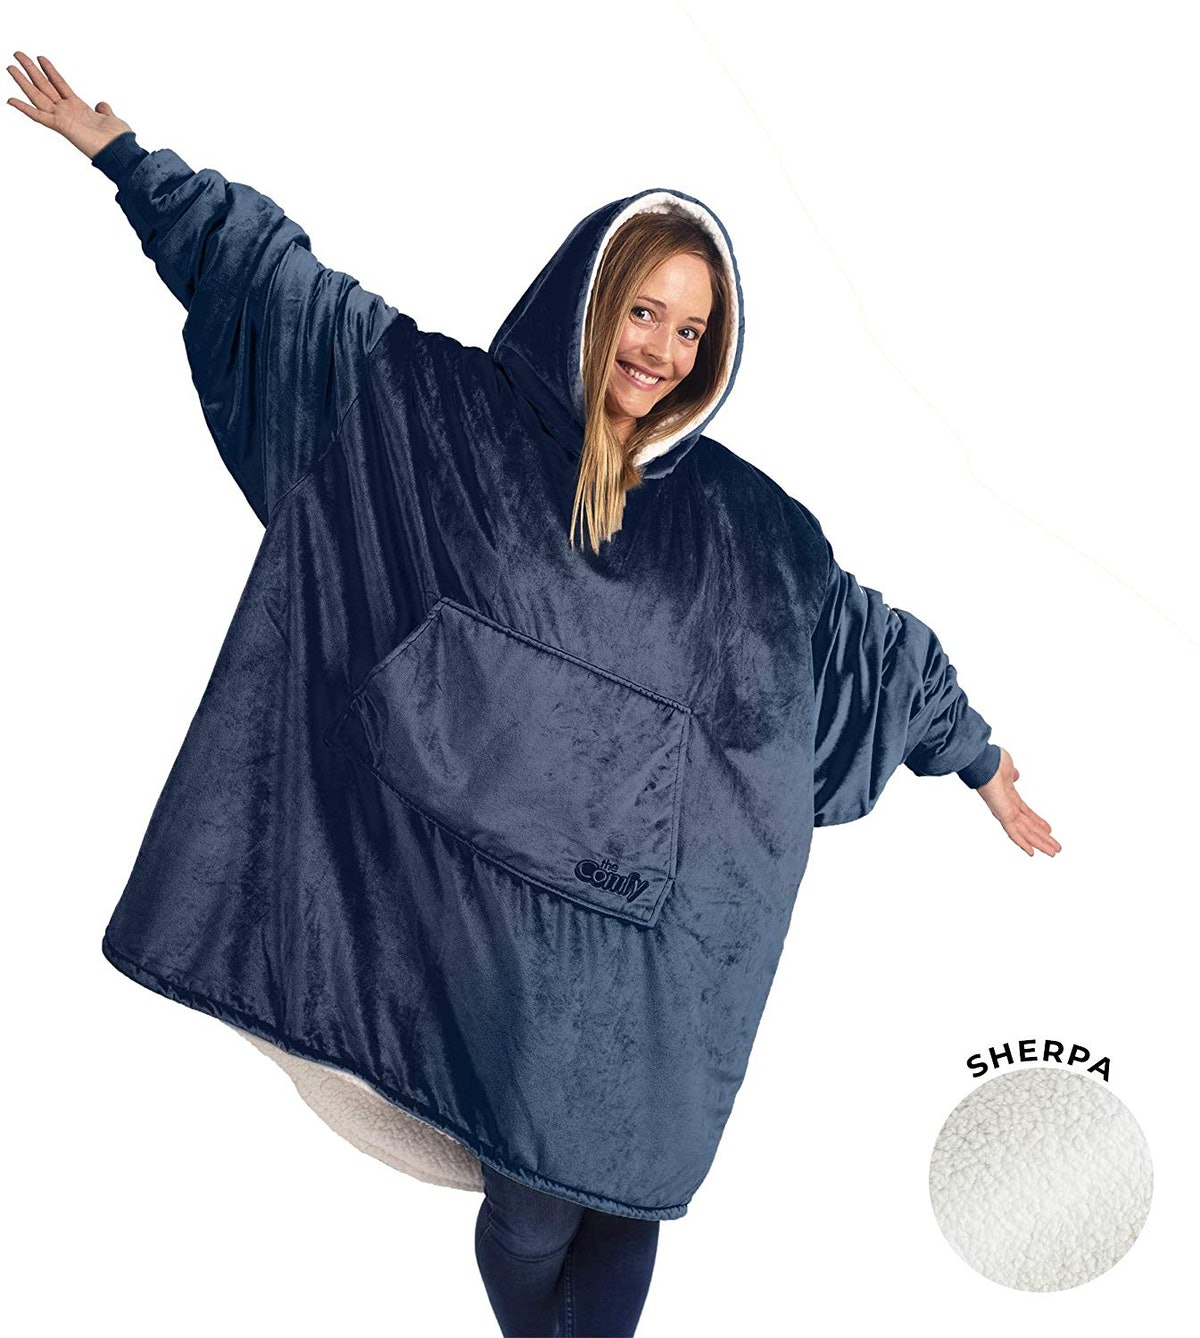 THE COMFY Oversized Wearable Sherpa Blanket